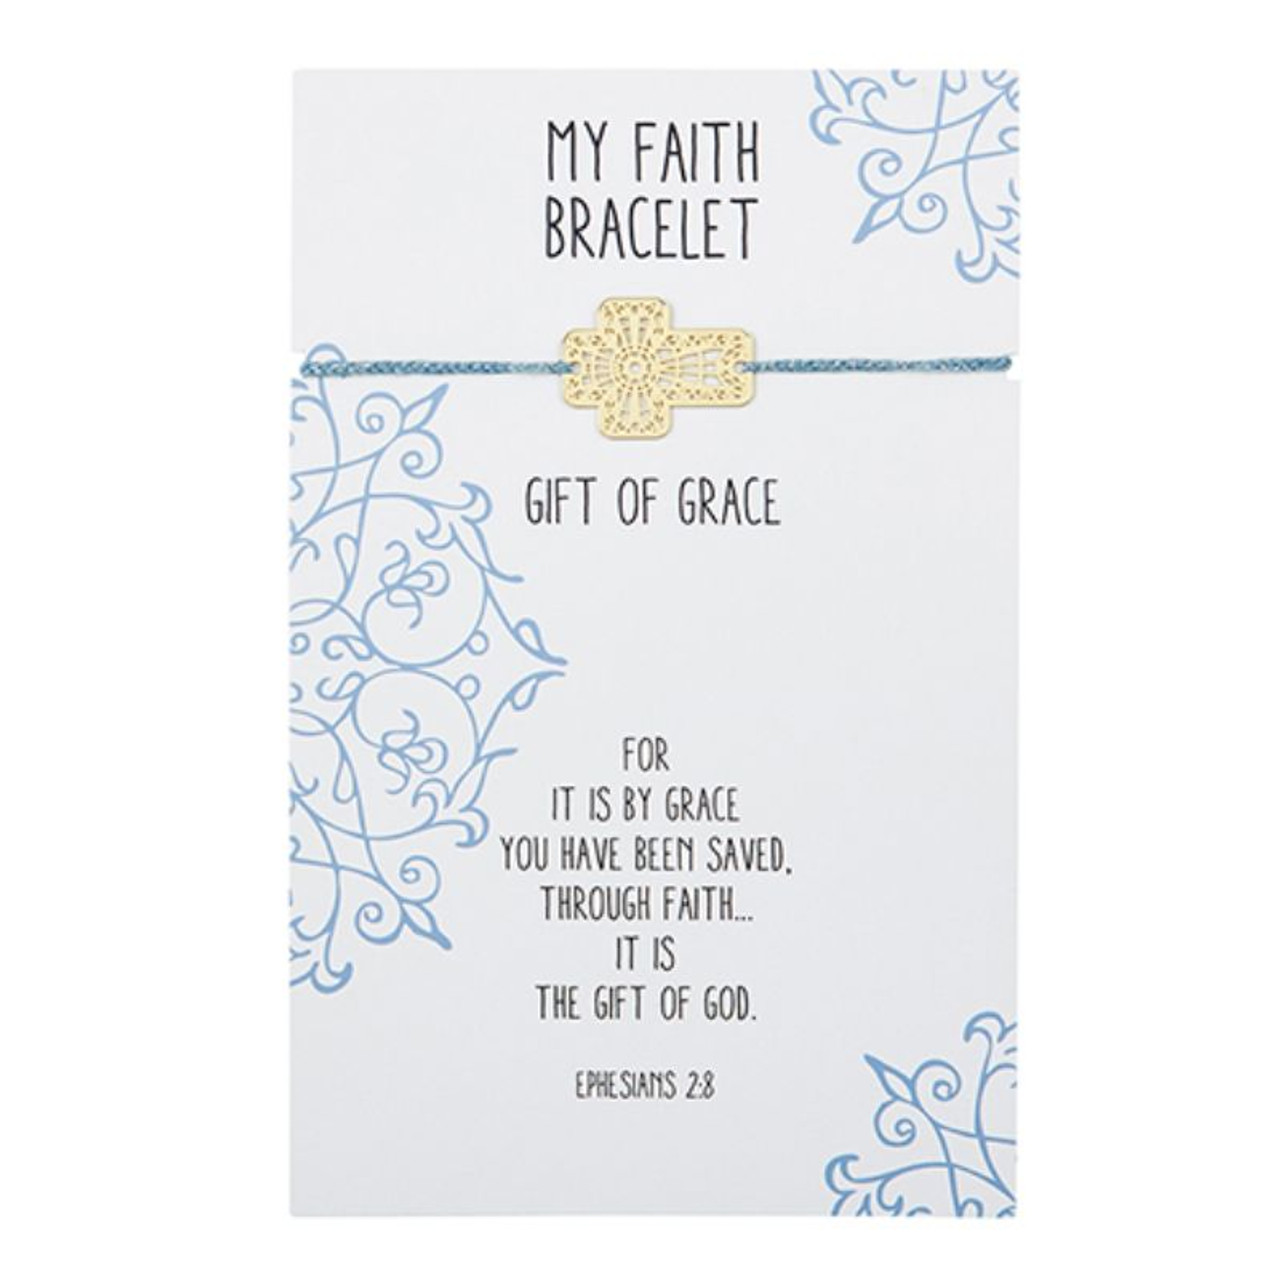 Beautifully designed, this easy to wear adjustable bracelet with center brass filigree cross charm is great to wear alone or stacked with other bracelets. A thoughtful gift at an attractive price point! Backer card includes corresponding Bible verse Ephesians 2:8.